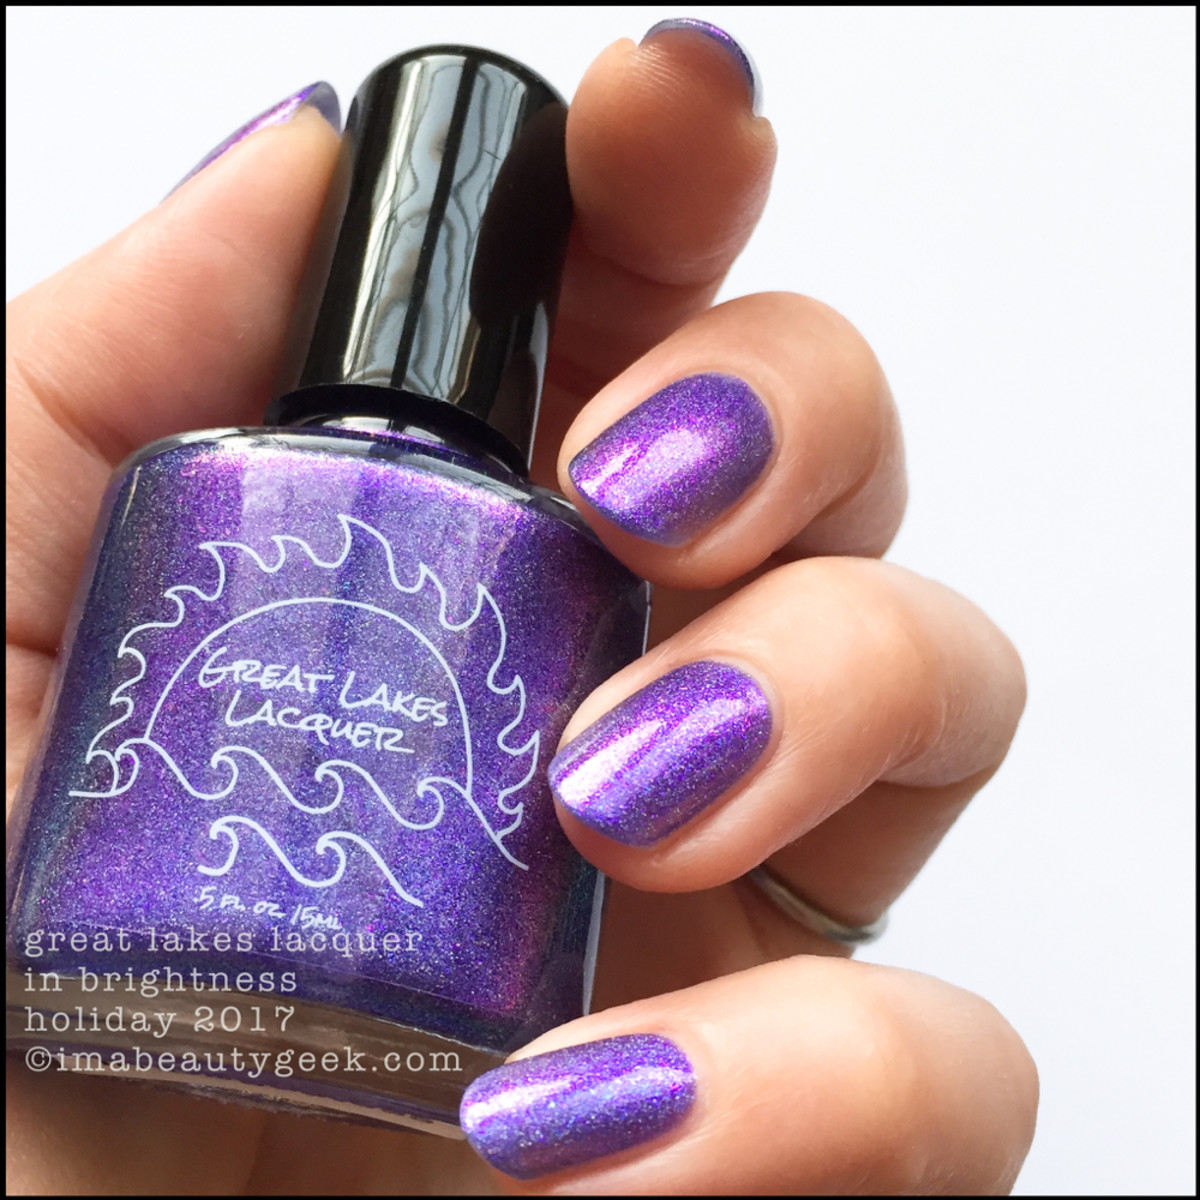 Great Lakes Lacquer In Brightness 1 _ Great Lakes Lacquer Holiday 2017